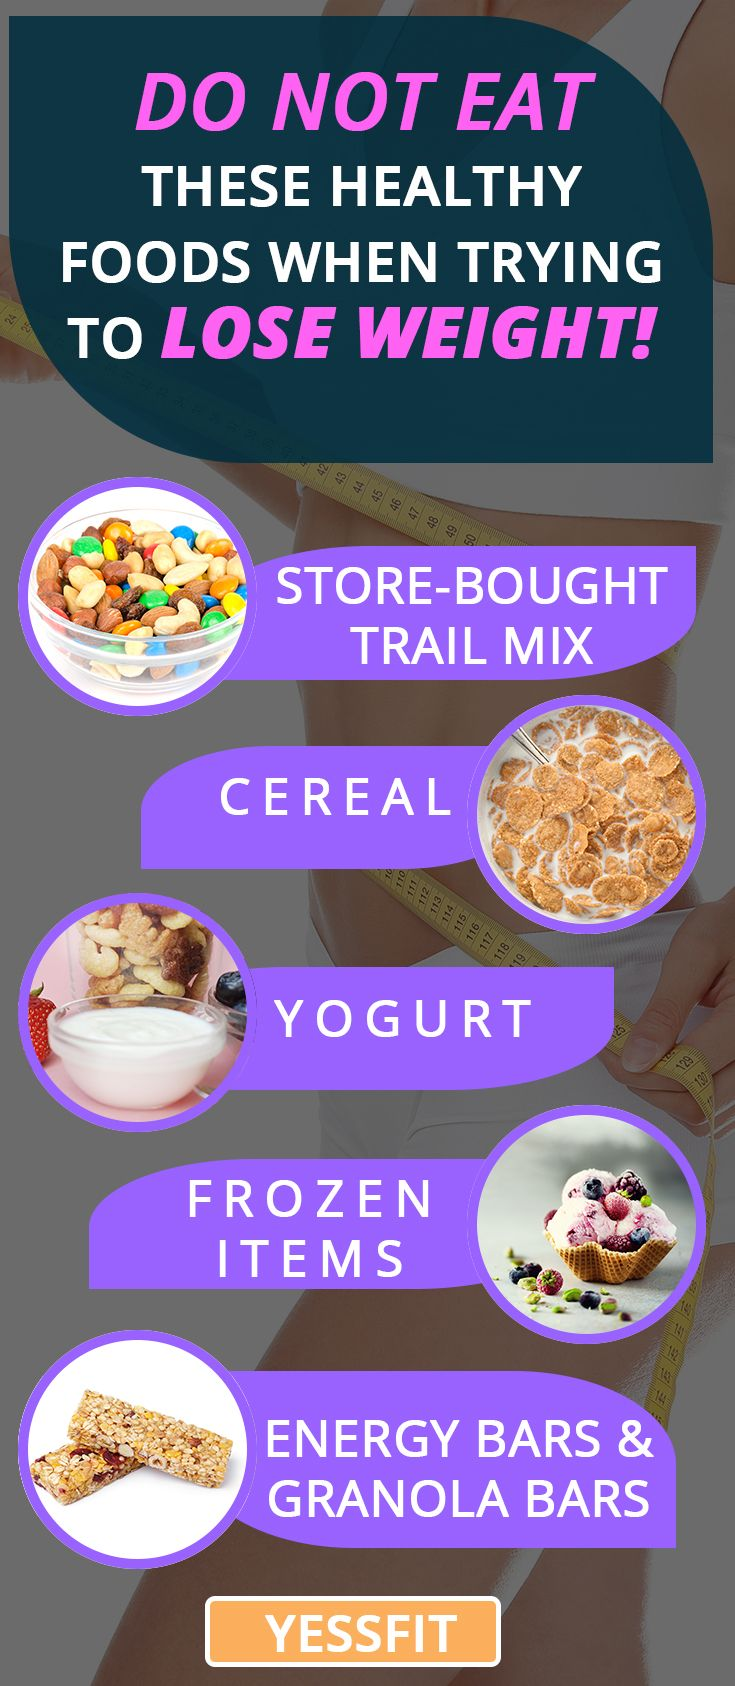 What foods not eat to lose weight